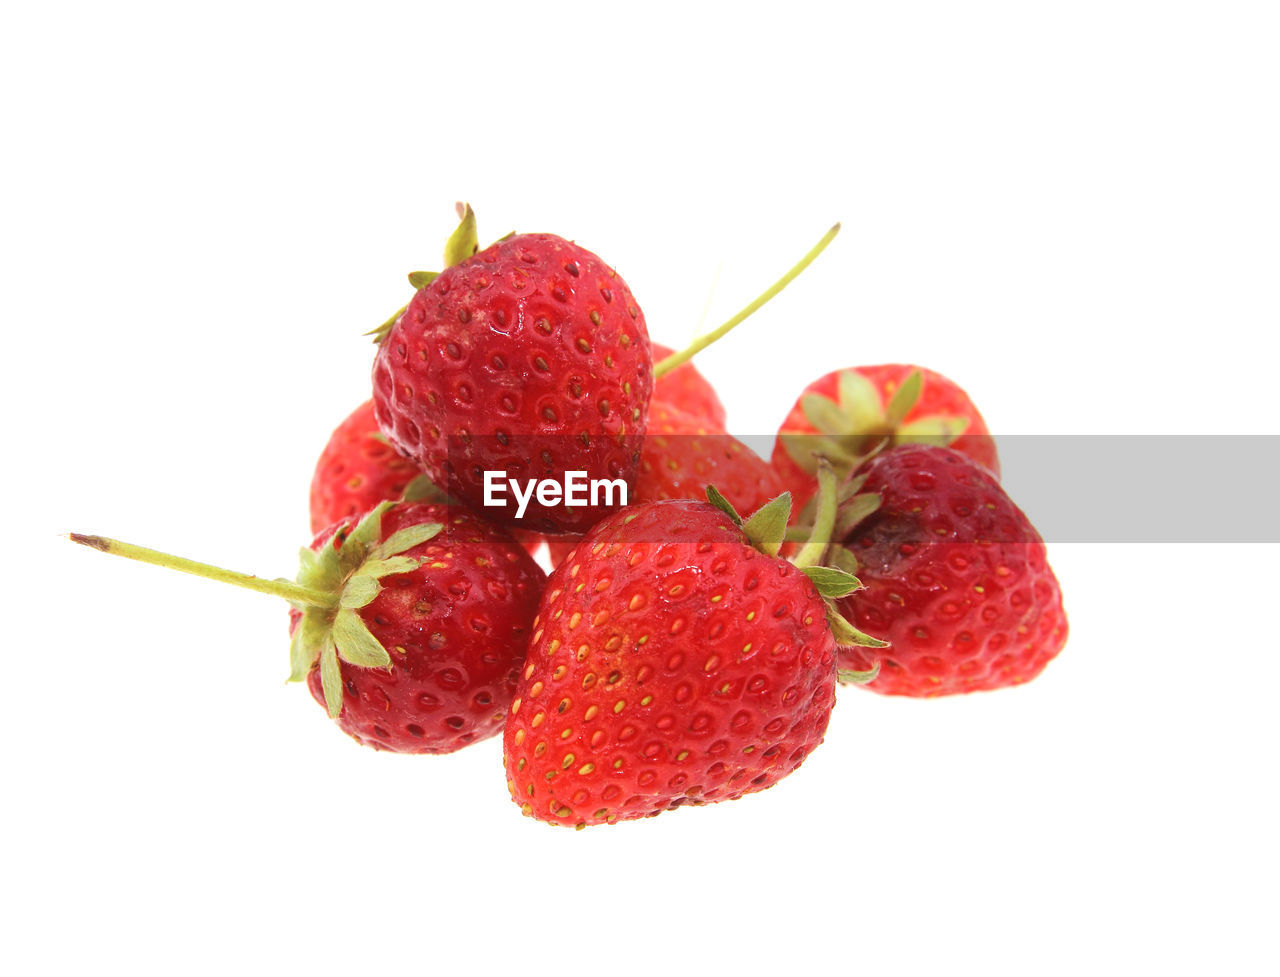 fruit, studio shot, healthy eating, red, food and drink, freshness, berry fruit, white background, food, wellbeing, close-up, strawberry, indoors, still life, no people, group of objects, cut out, copy space, ripe, medium group of objects, lychee, dieting